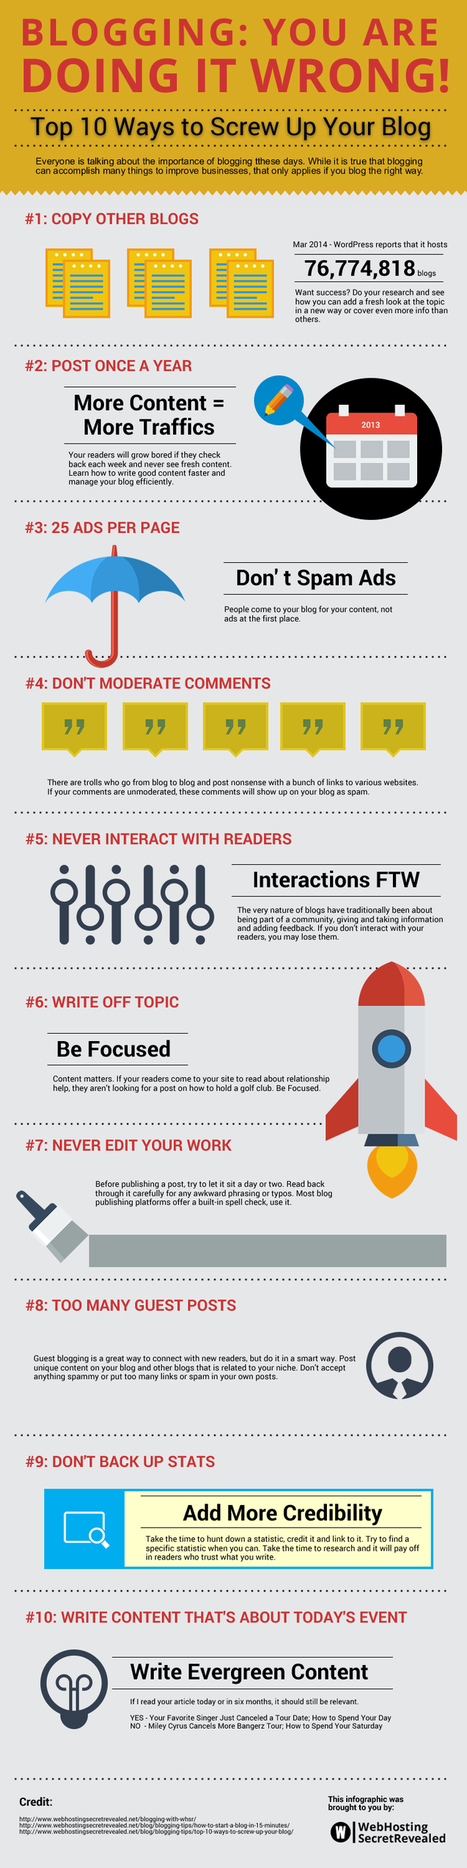 [Infographic] 10 Blogging Mistakes to Avoid | The Joys of Blogging | Scoop.it